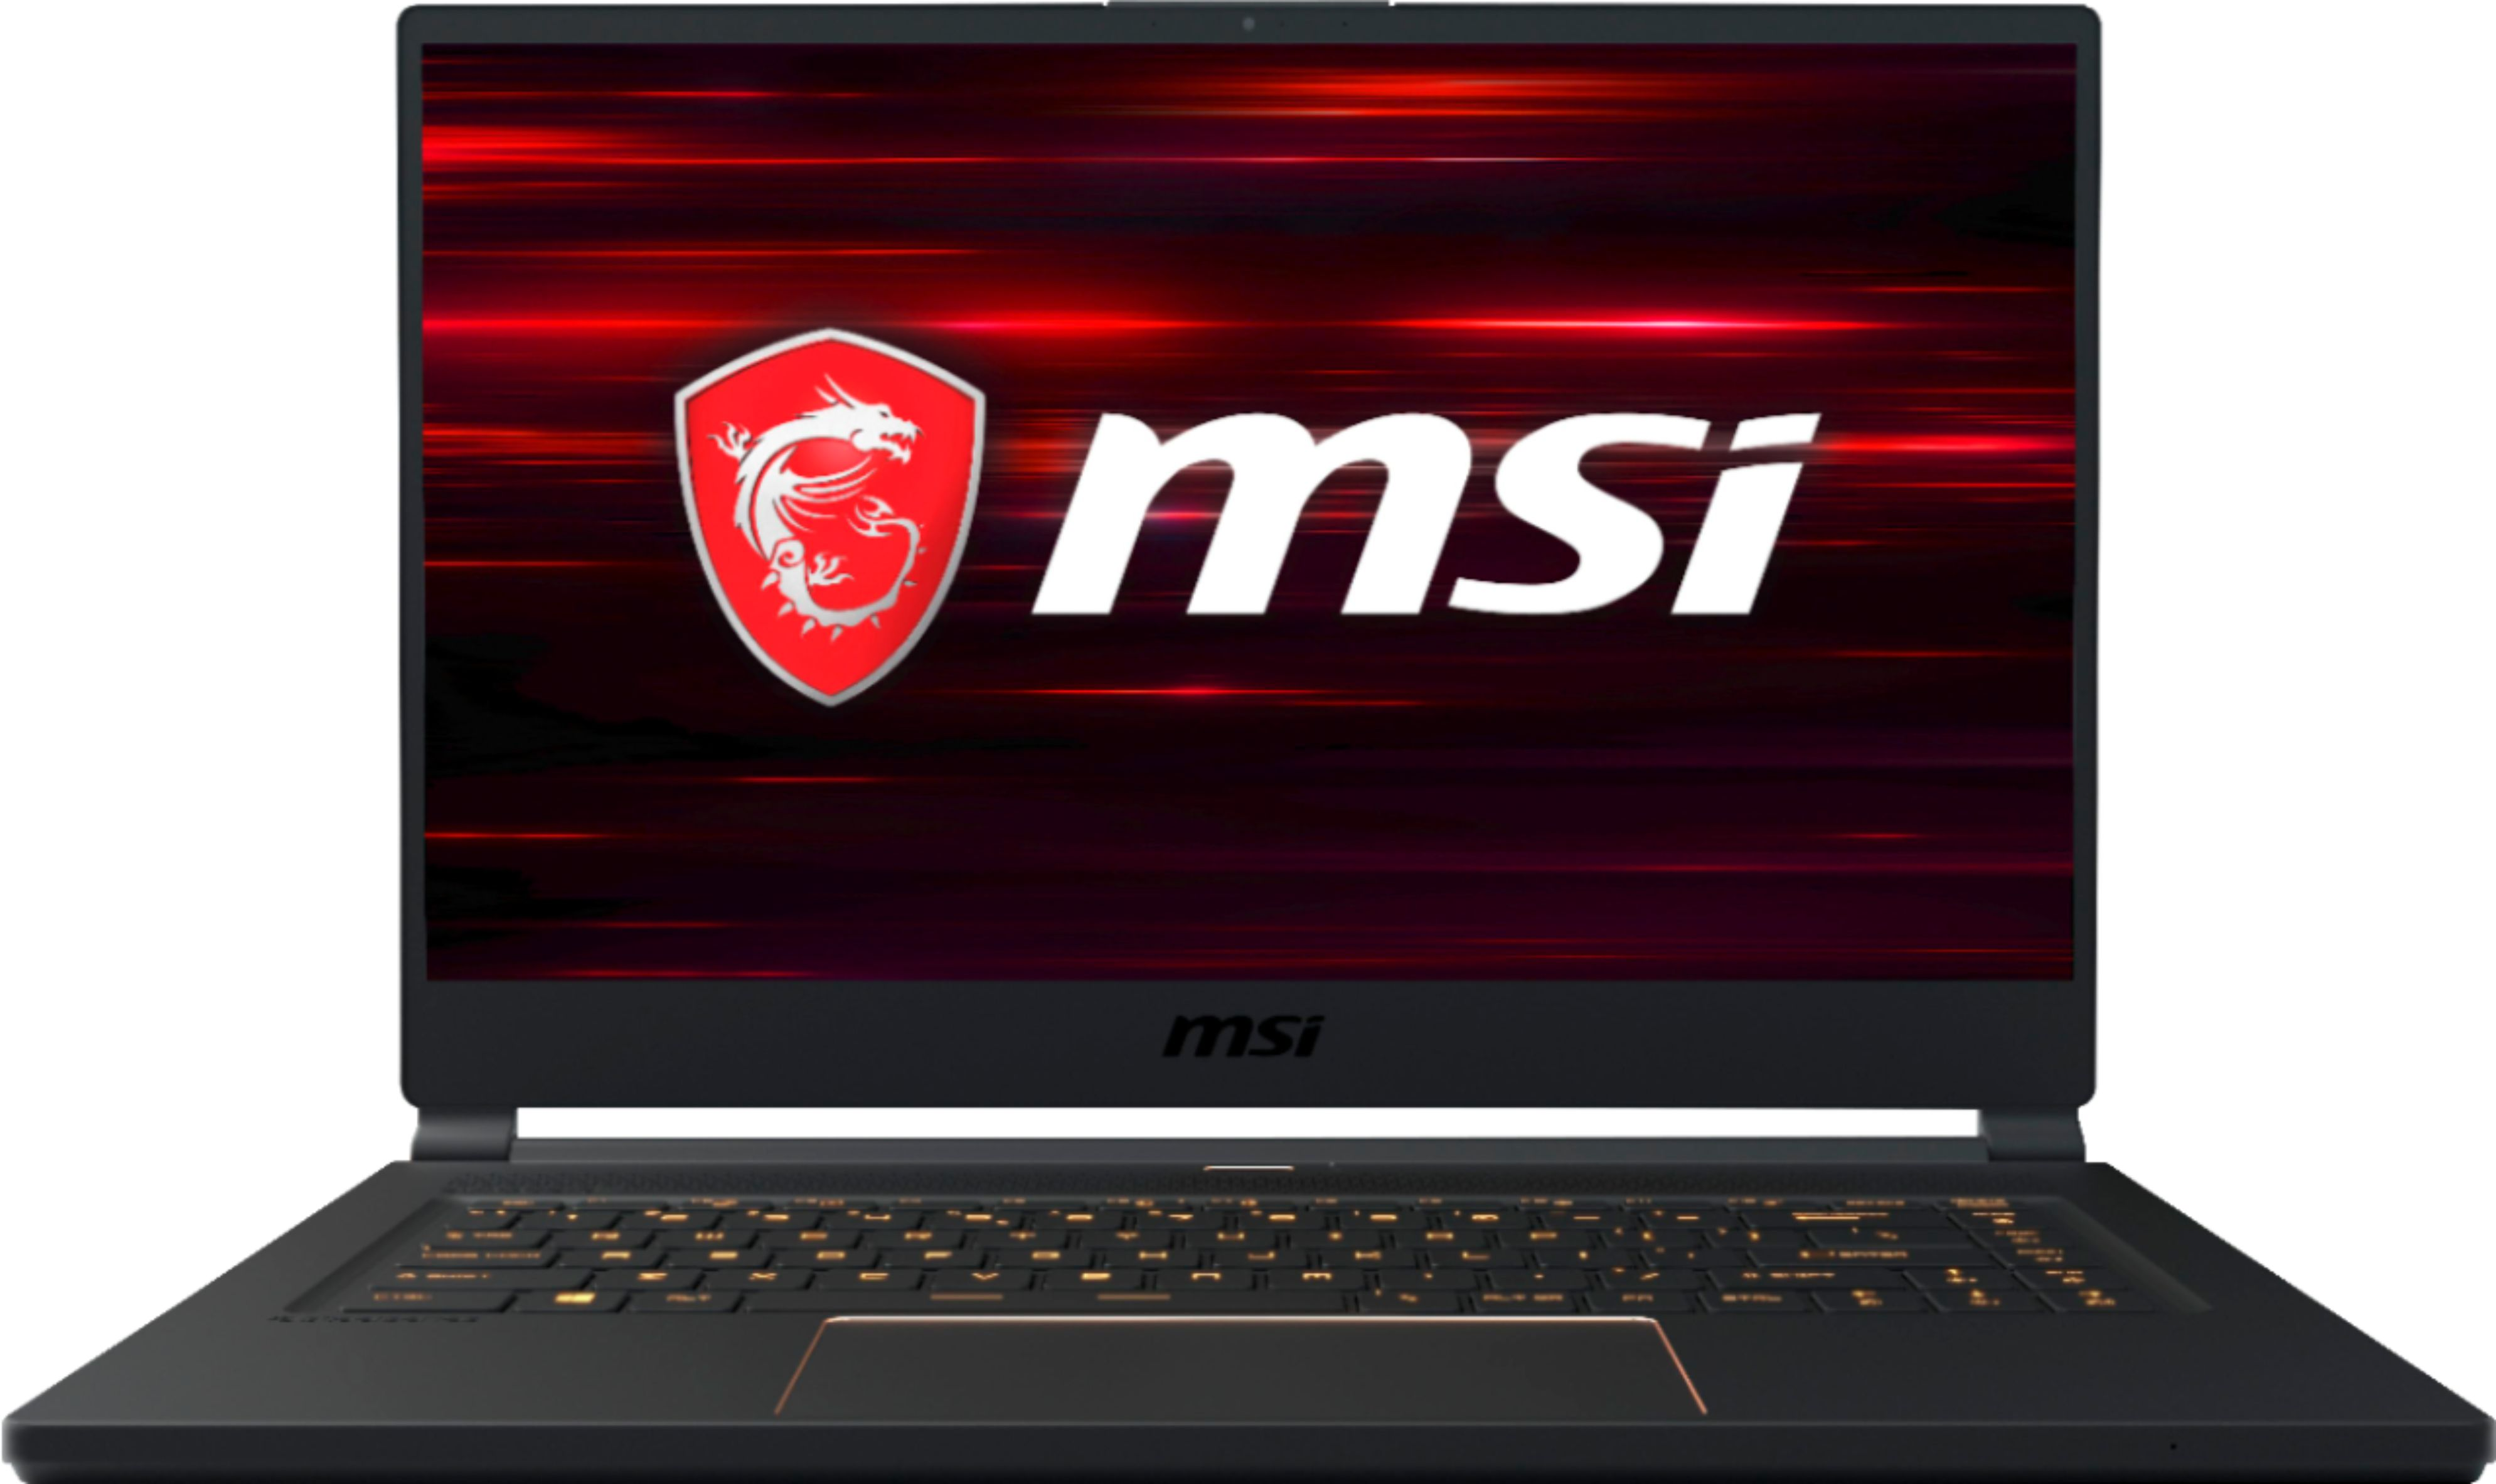 """Front Zoom. MSI - Geek Squad Certified Refurbished 15.6"""" Gaming Laptop - Intel Core i7 - 16GB Memory - NVIDIA GeForce RTX 2060 - 512GB SSD - Matte Black With Gold Diamond Cut."""